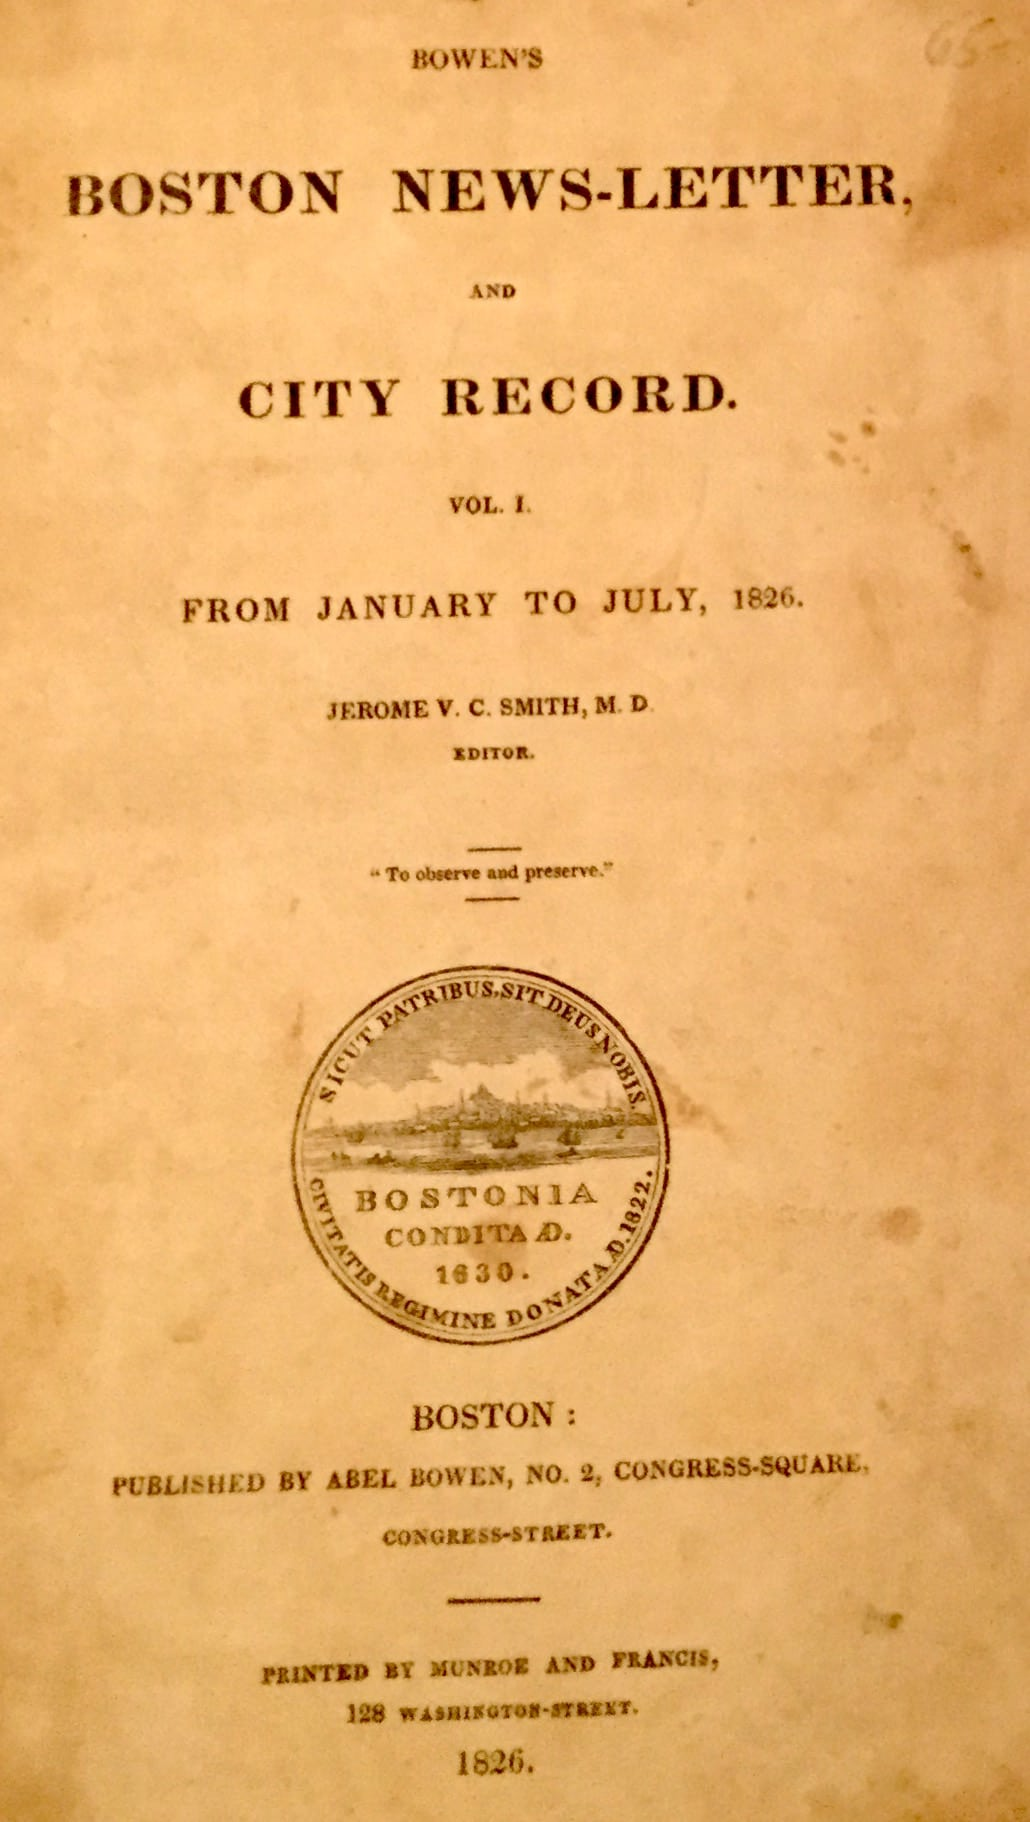 Bowen's Boston News-Letter and City Record